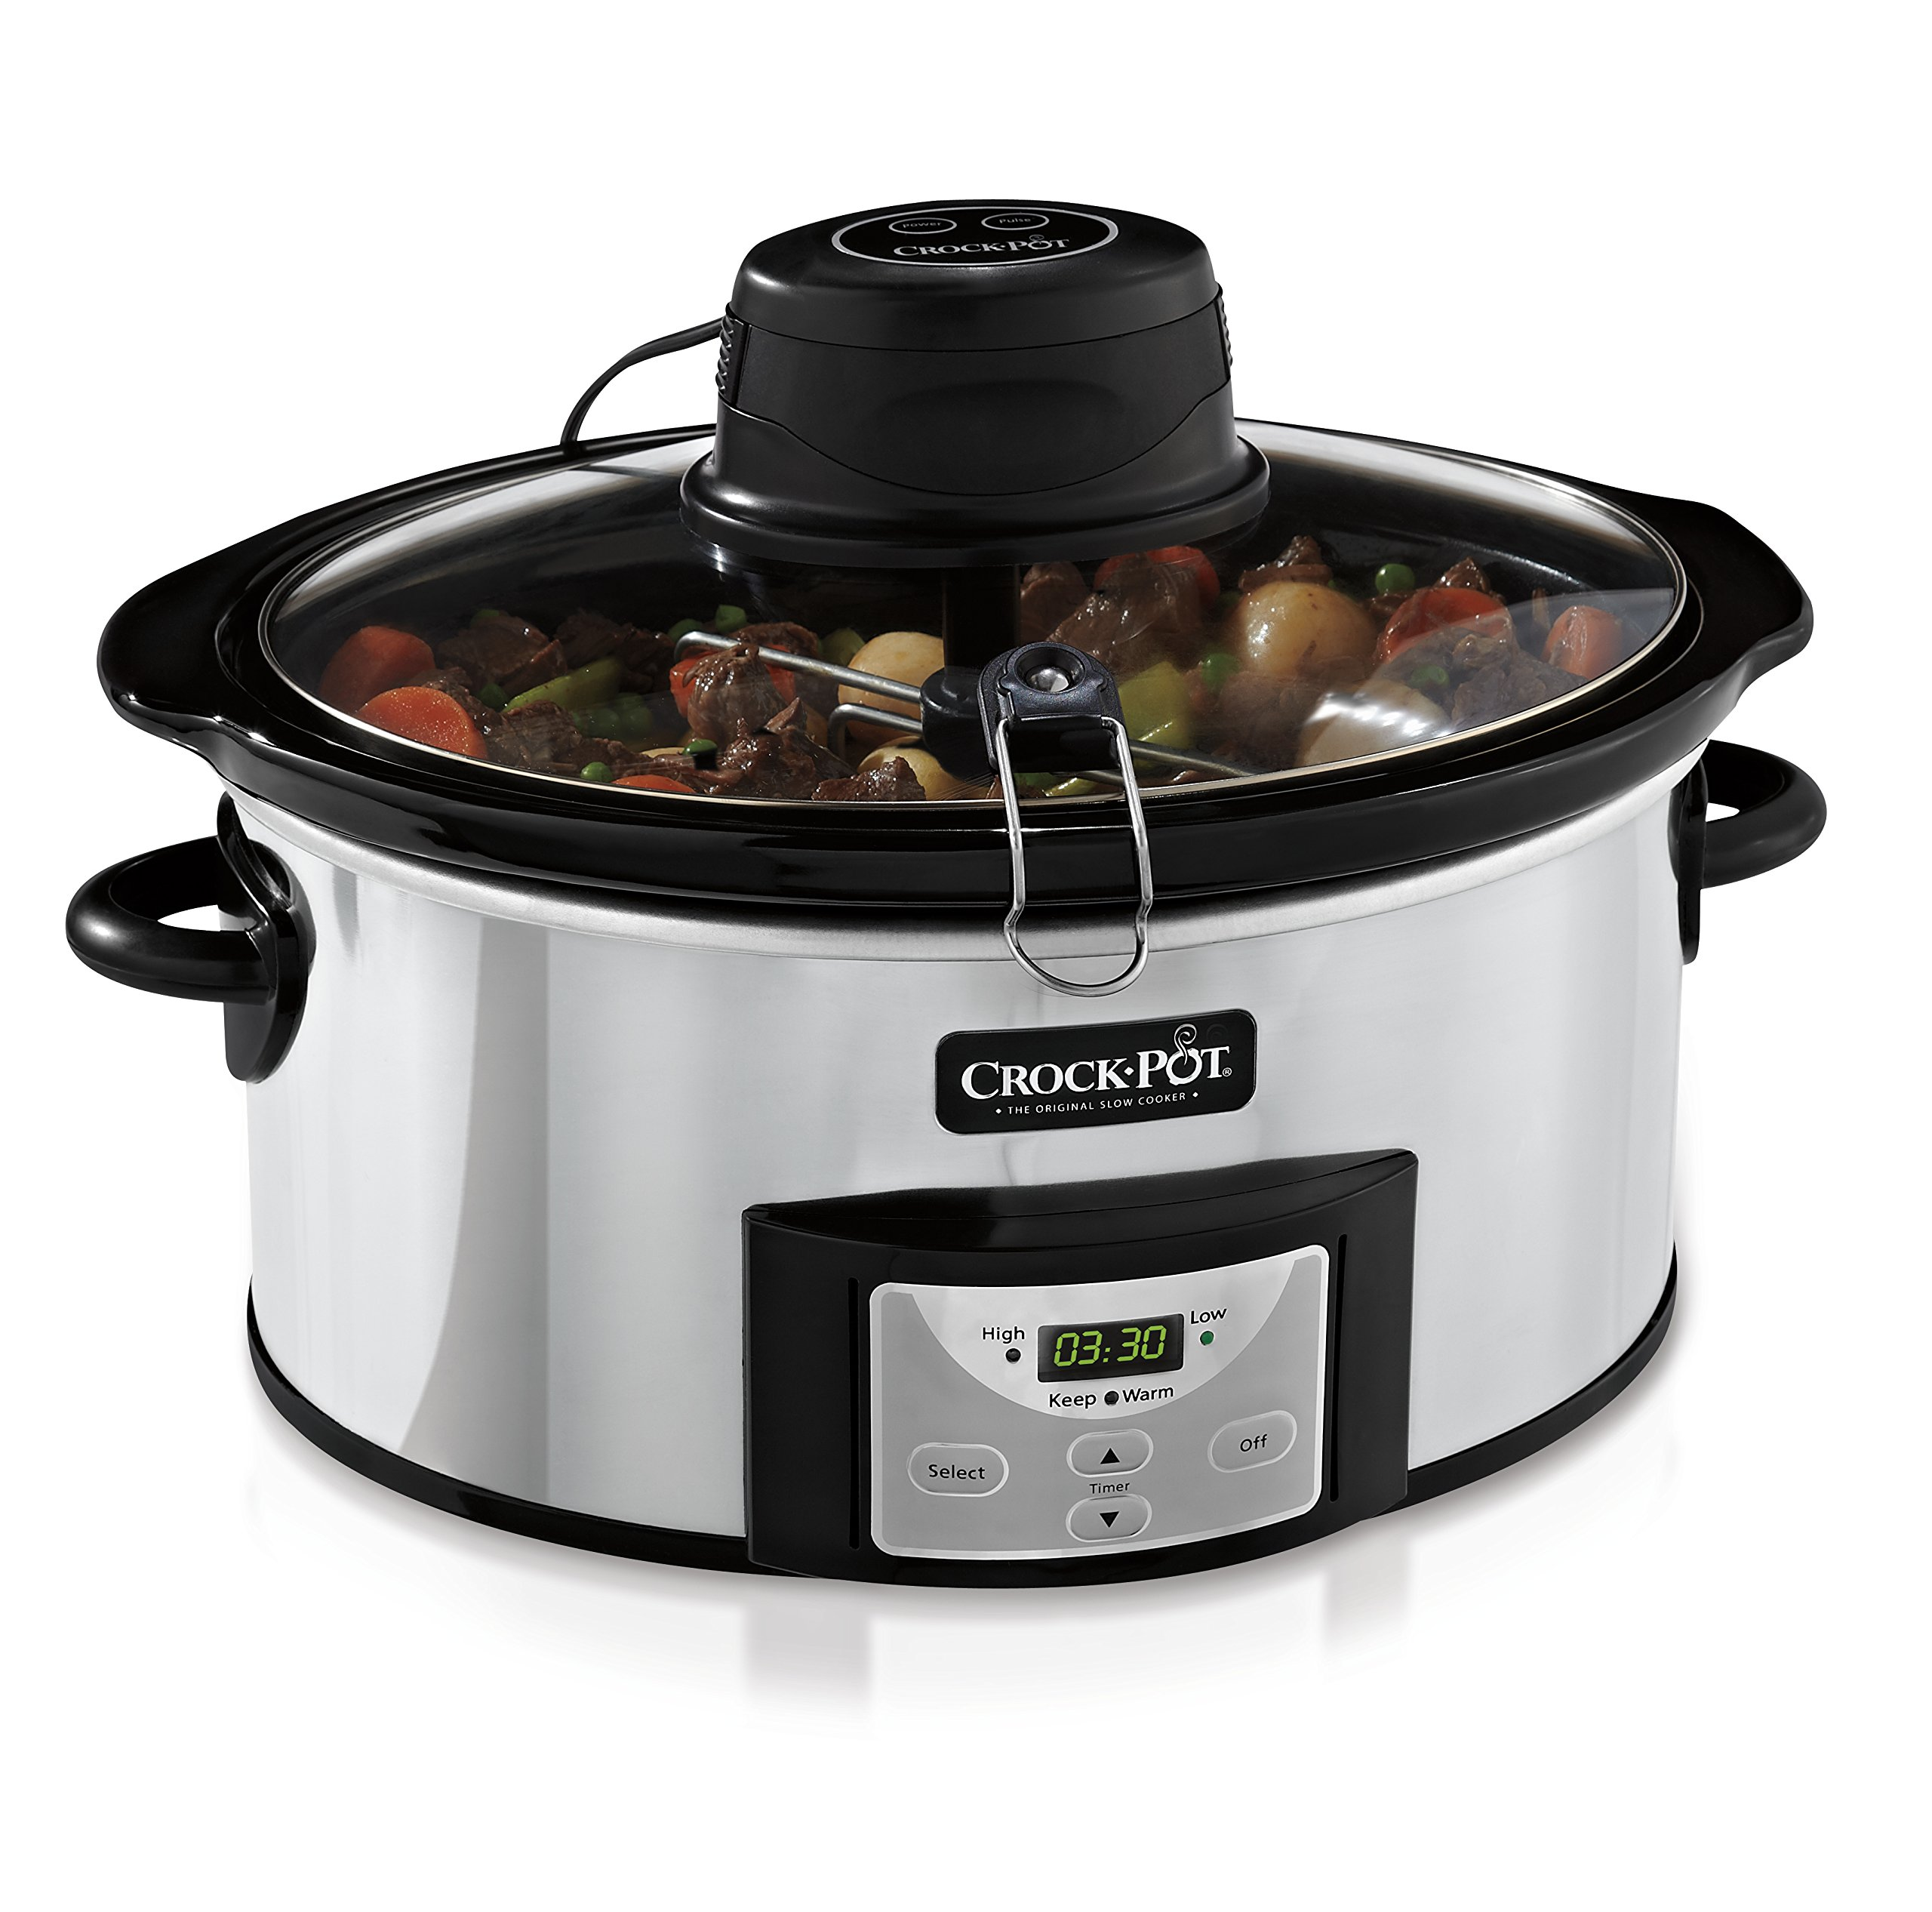 Crock-Pot 6Qt Polished Stainless Oval Programmable Digital Slow Cooker w/Auto Stir System SCCPVC600AS-P